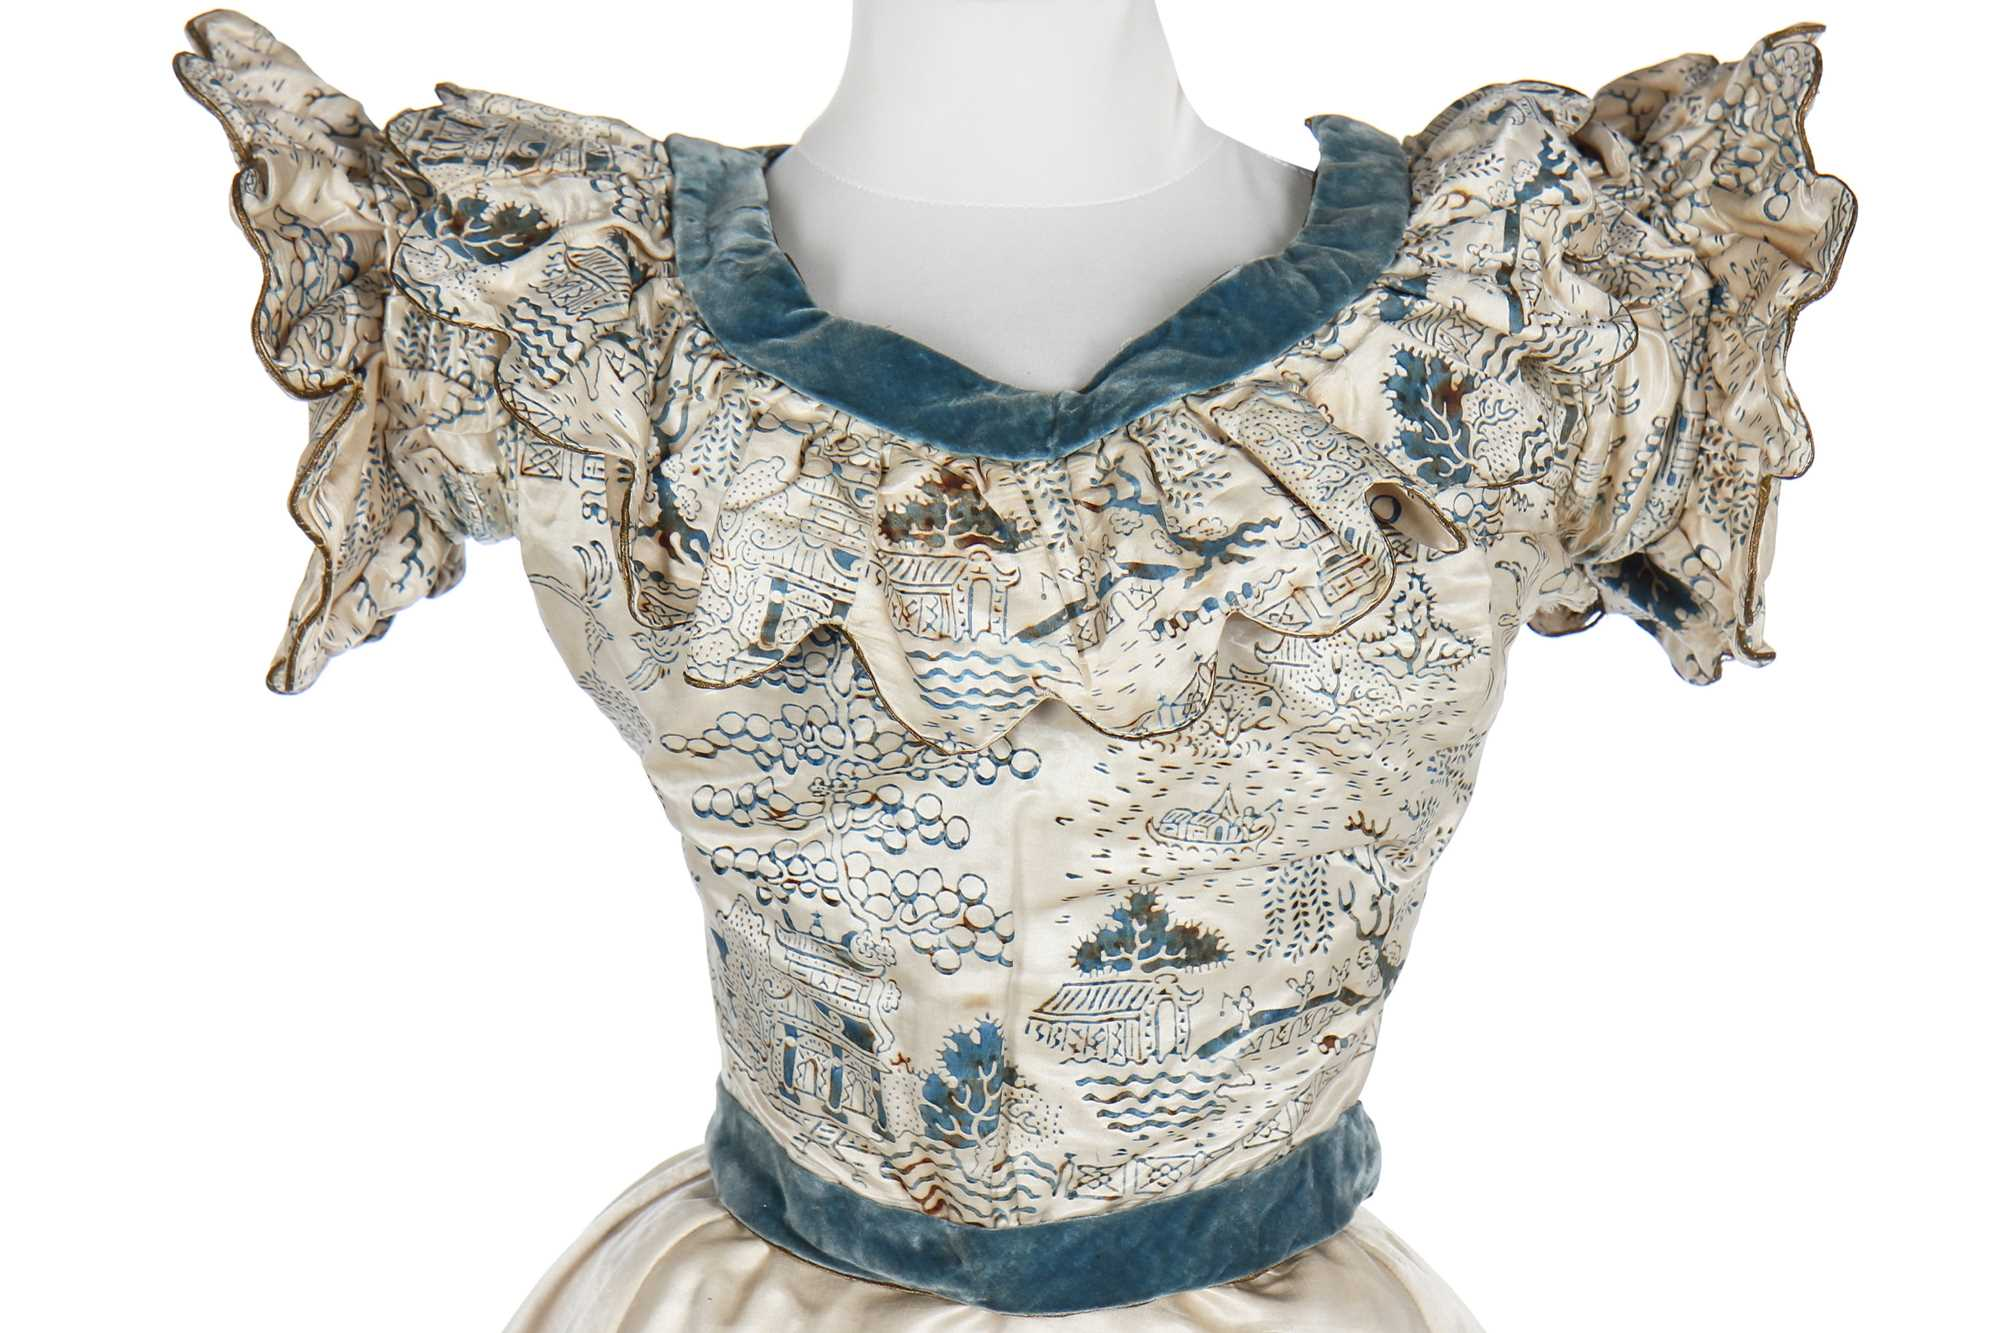 Lot 10 - An interesting group of mainly theatrical costumes, 1880s-1960s